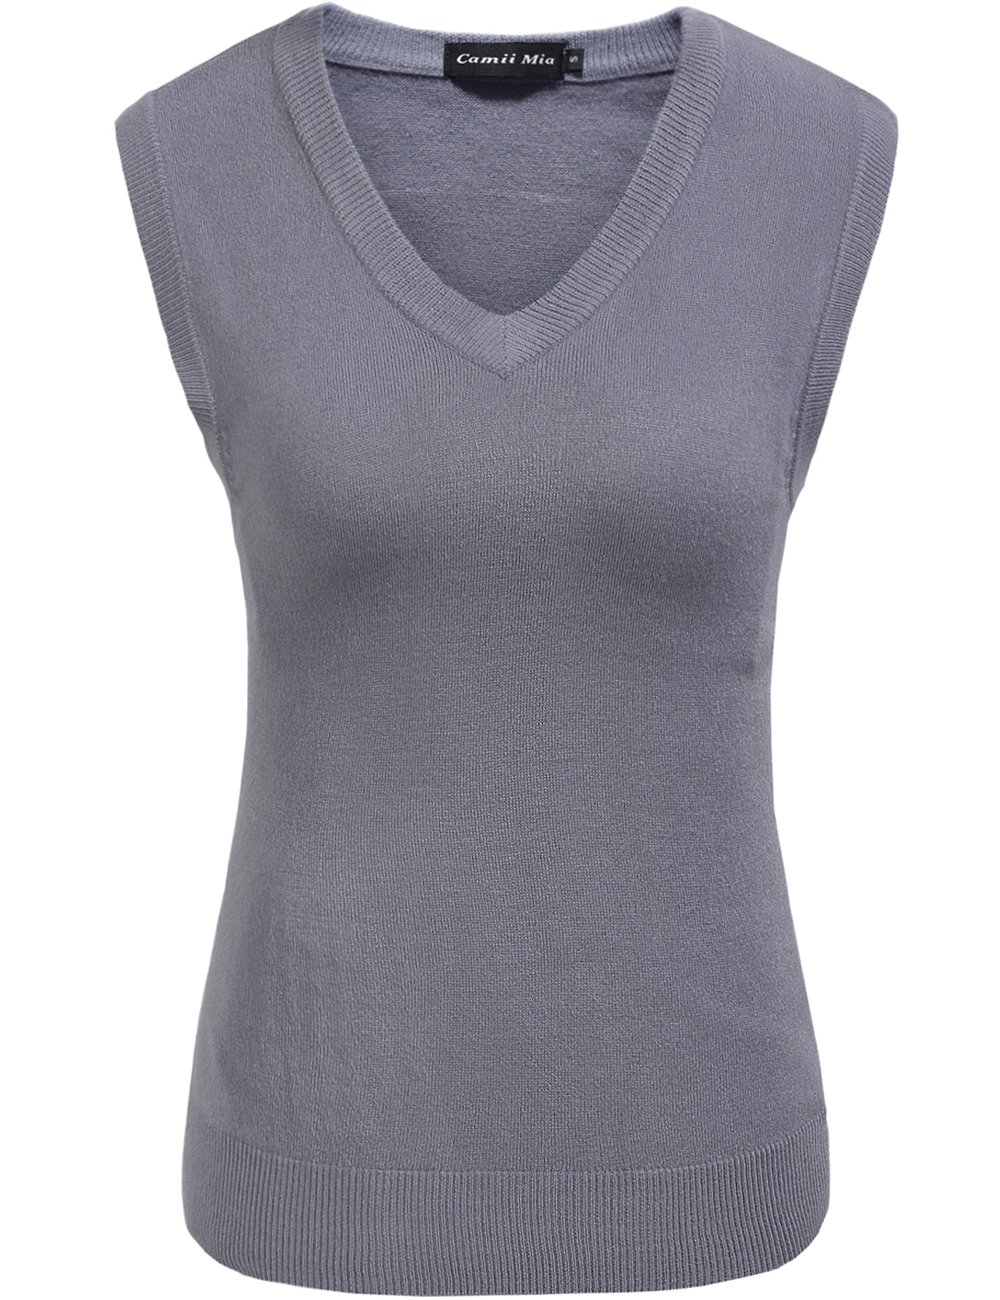 Camii Mia Women's Solid Knit Classic V Neck Sleeveless Pullover Sweater Vest (Large, Grey) by Camii Mia (Image #1)